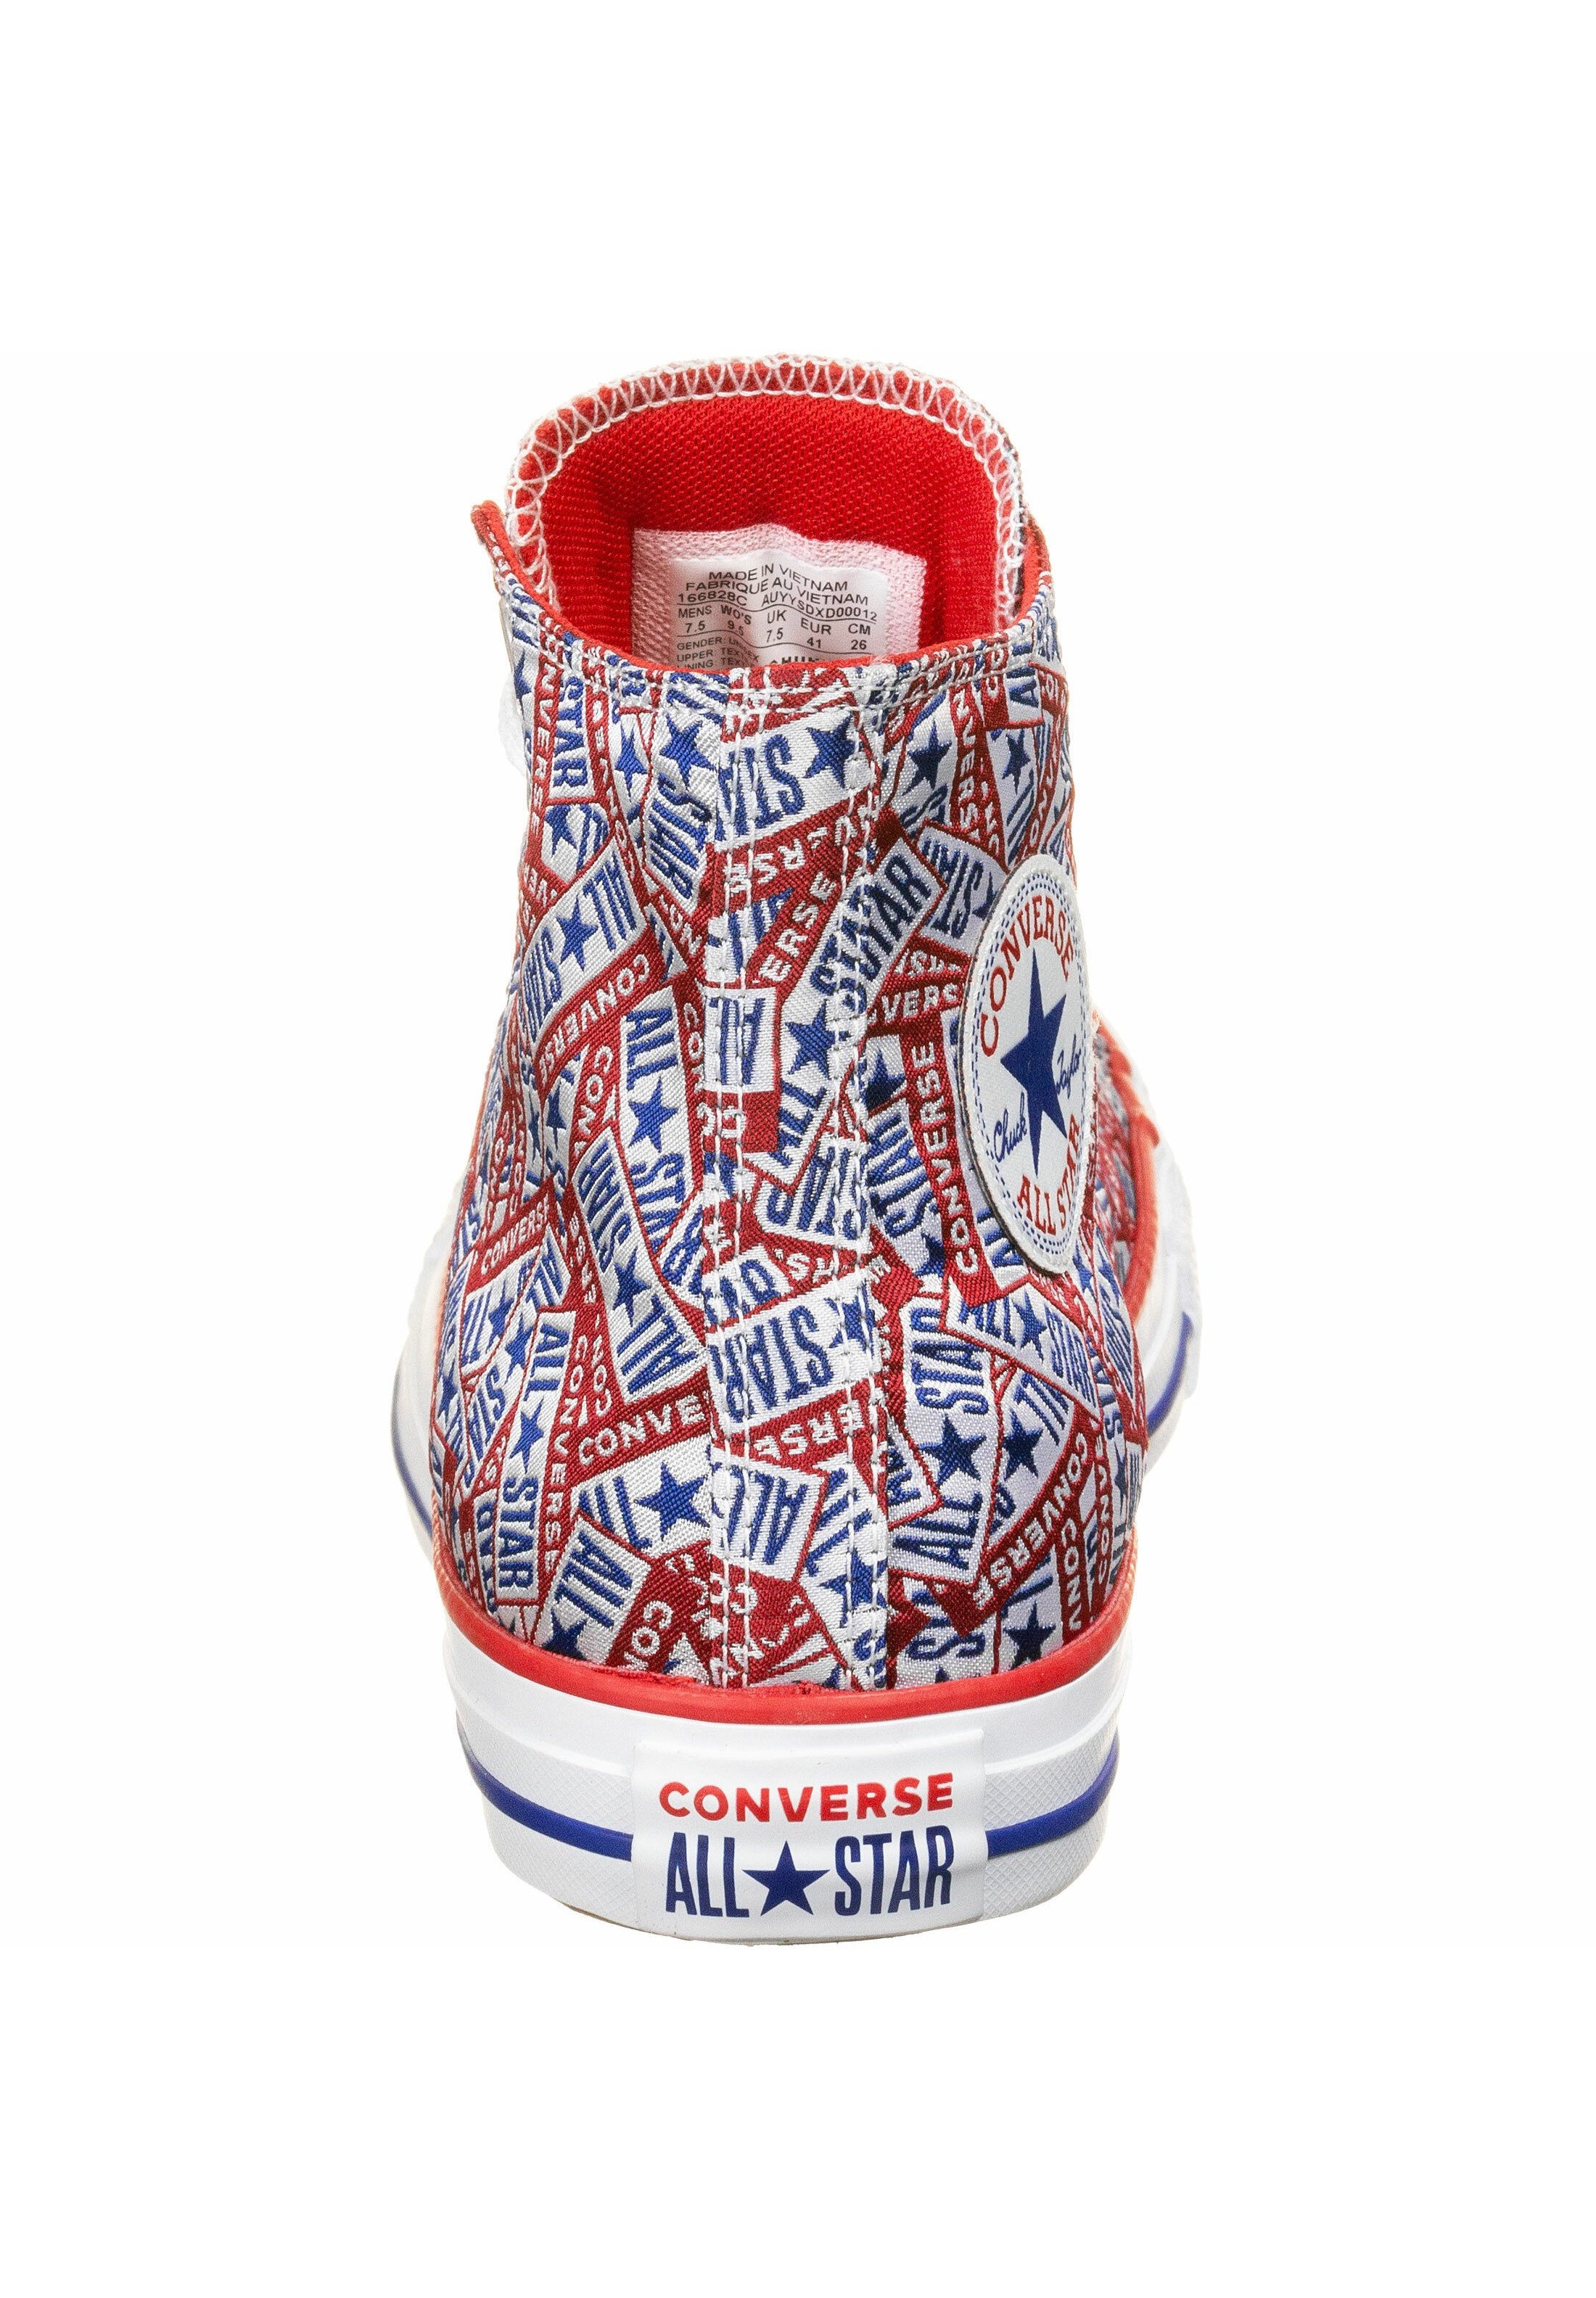 Converse Sneakers Hoog - Red/white/blue DWHlCKr